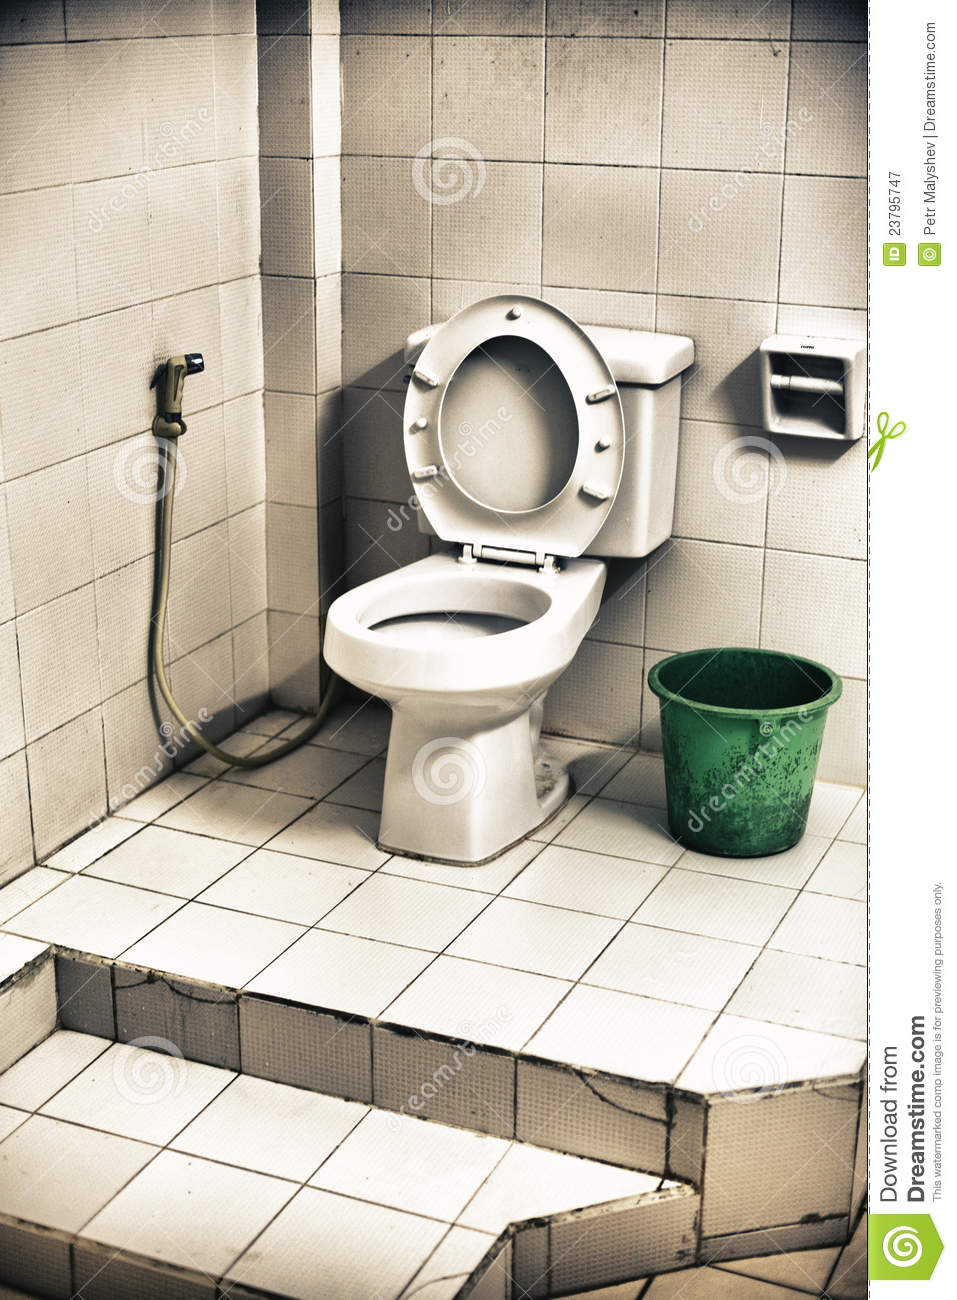 Dirty Toilet Royalty Free Stock Photography Image 23795747